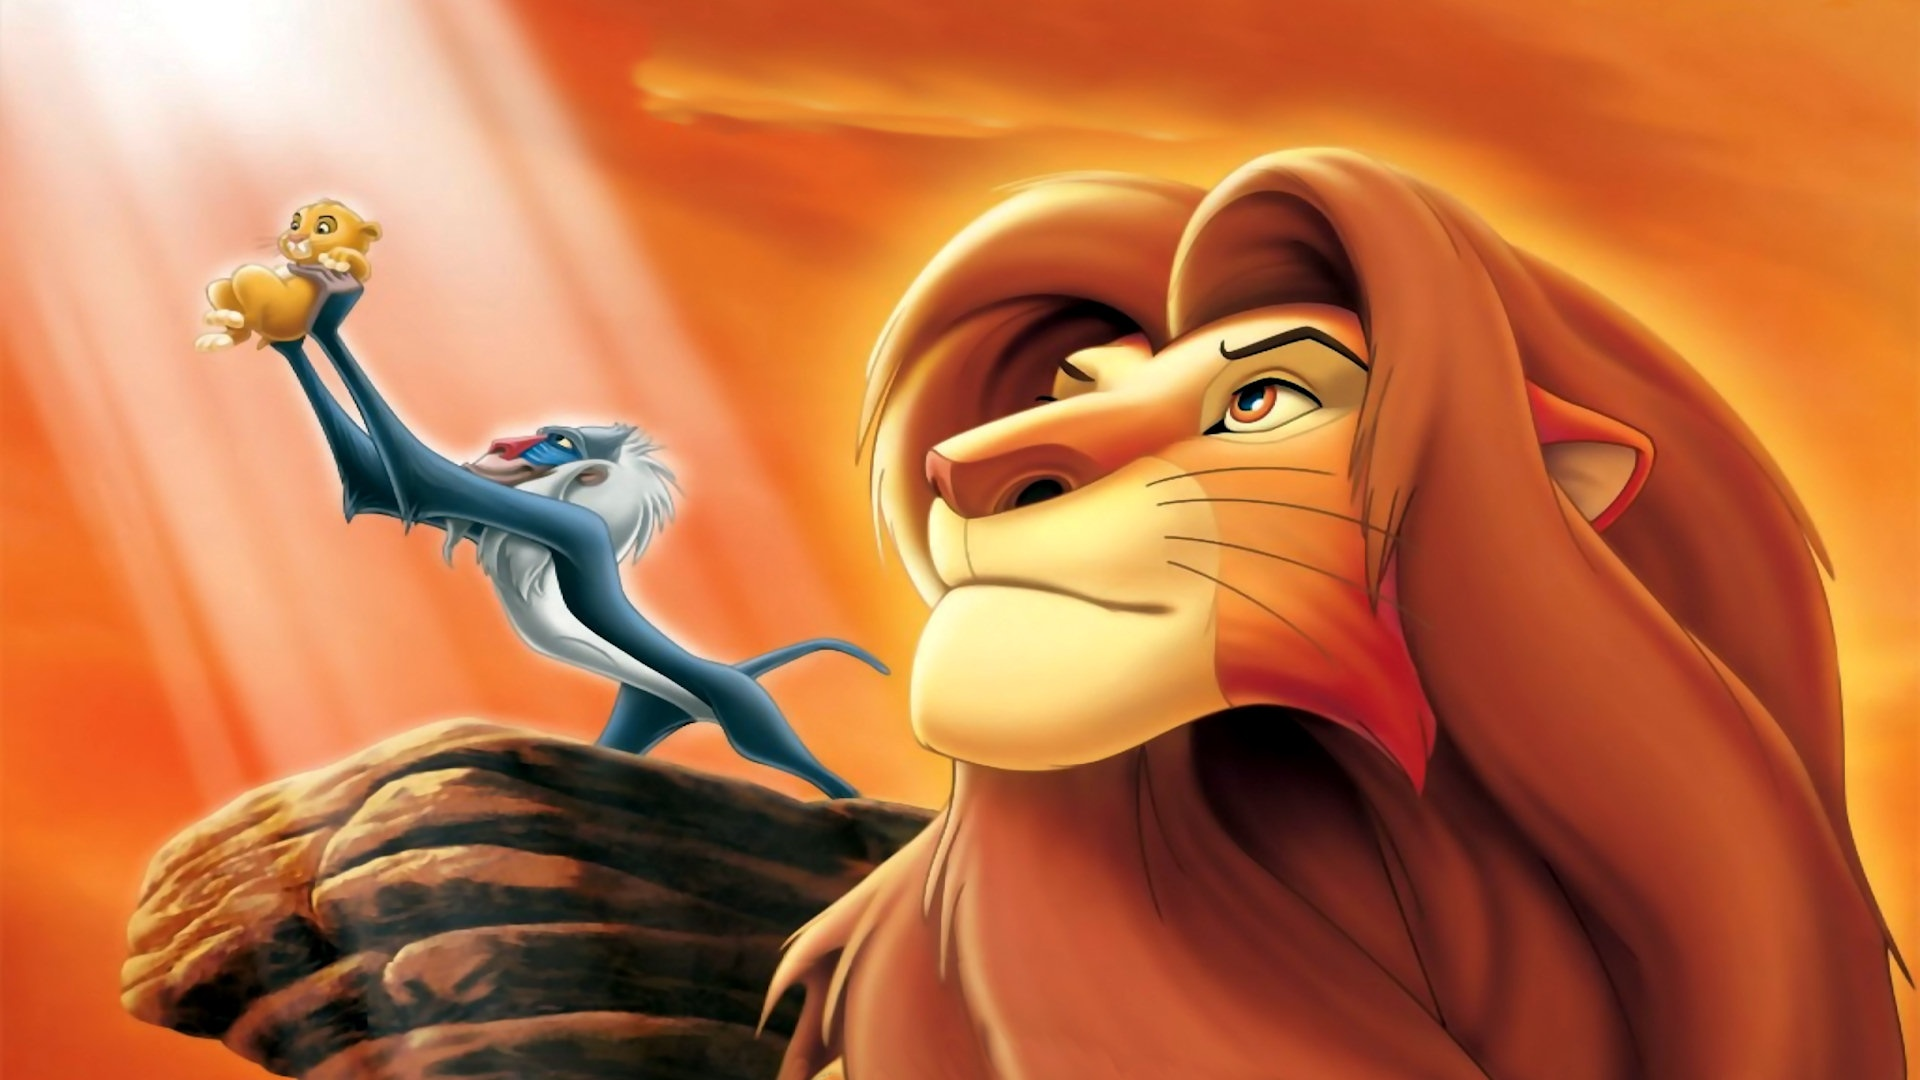 Lion King Wallpaper Hd wallpaper   1155186 1920x1080